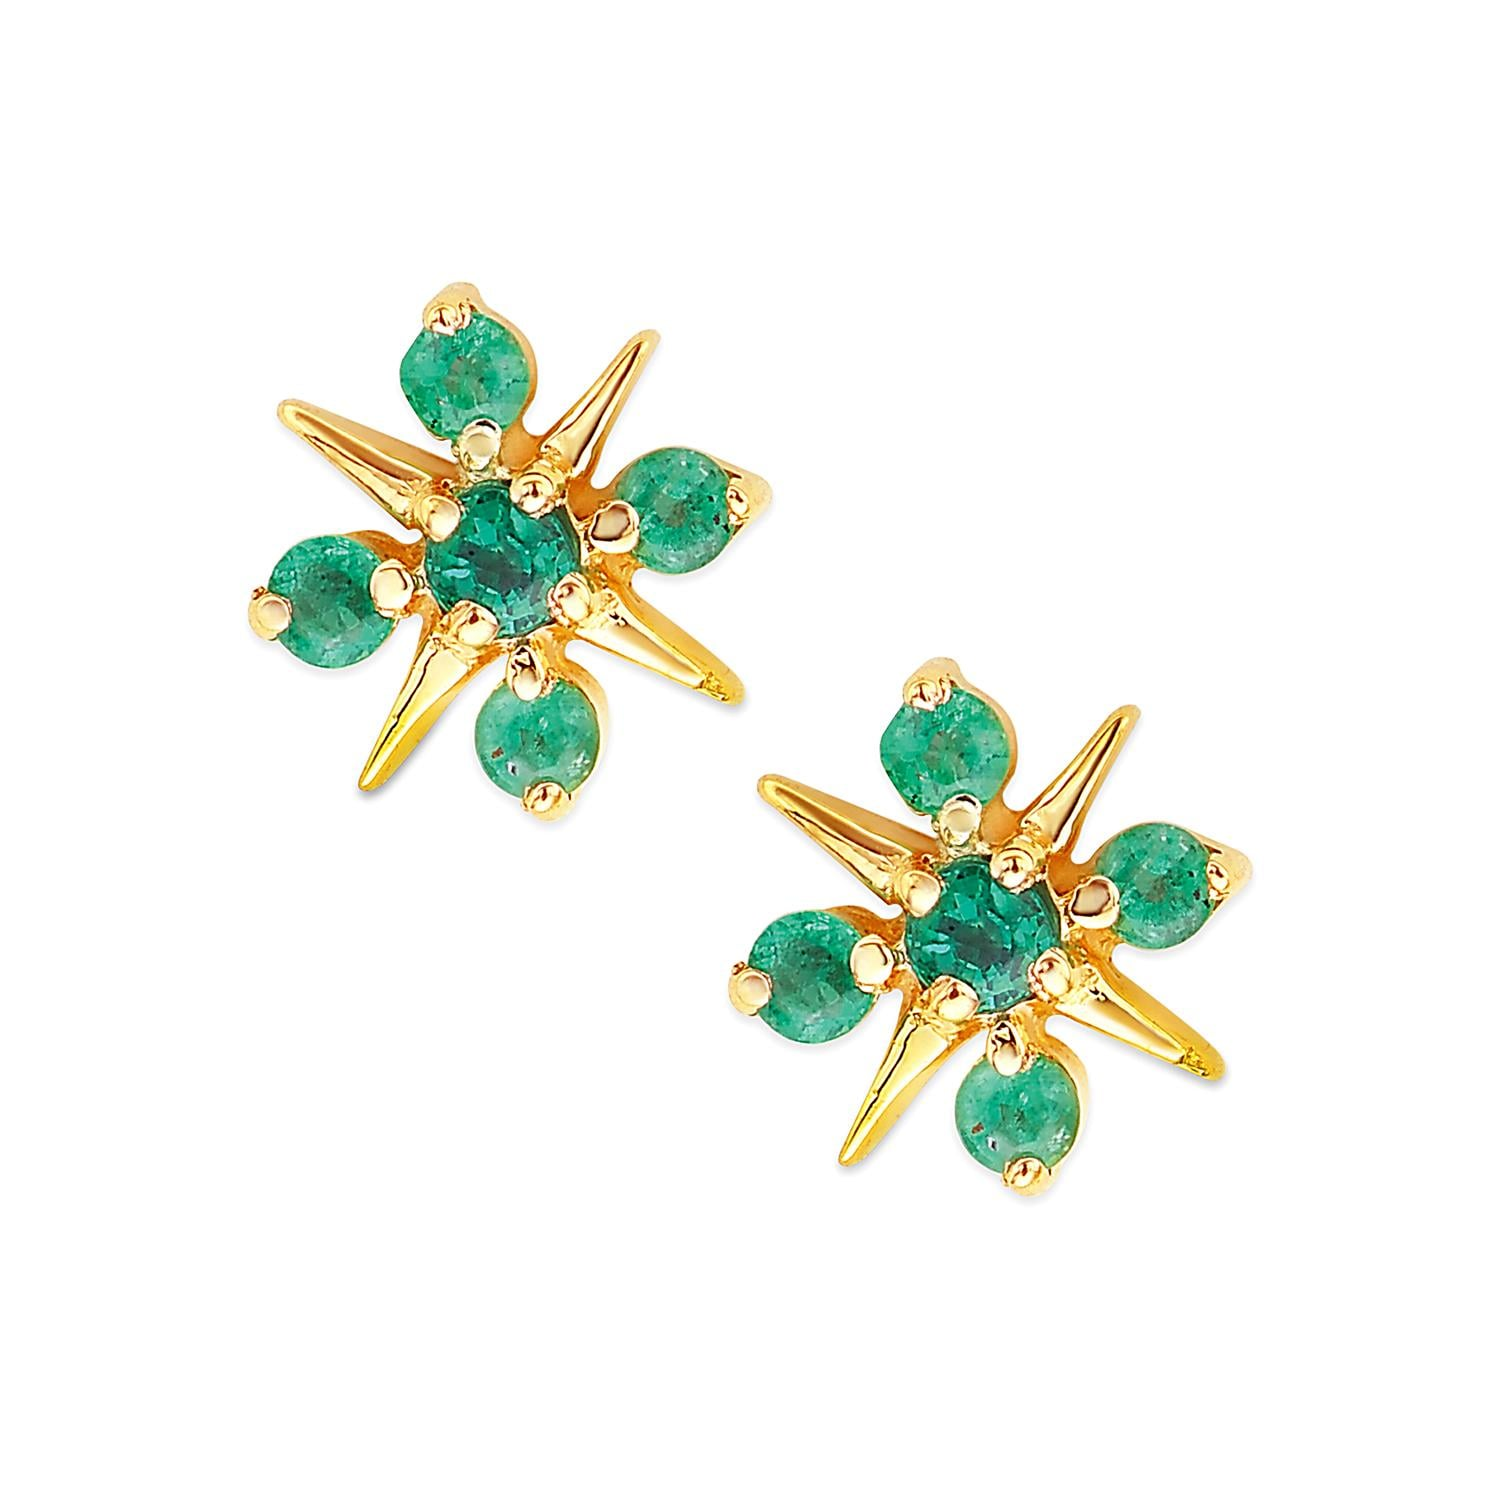 raindrop b emerald green chalcedony jewelry chandelier drop hook rain earrings products chandilier natalie